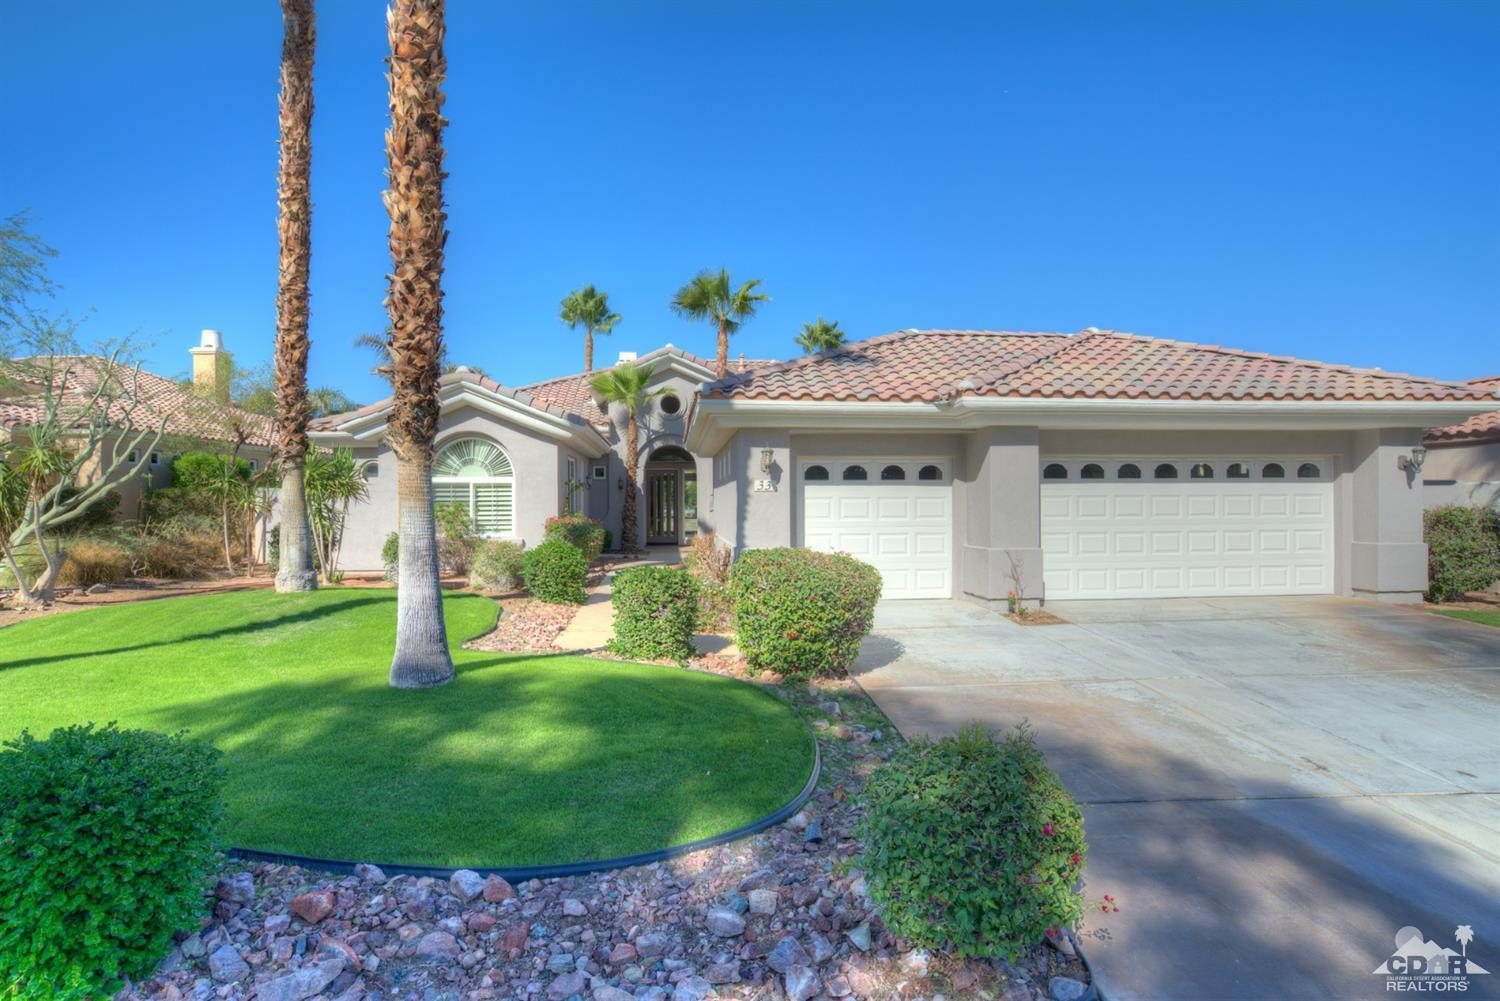 Rancho Mirage Neighborhood